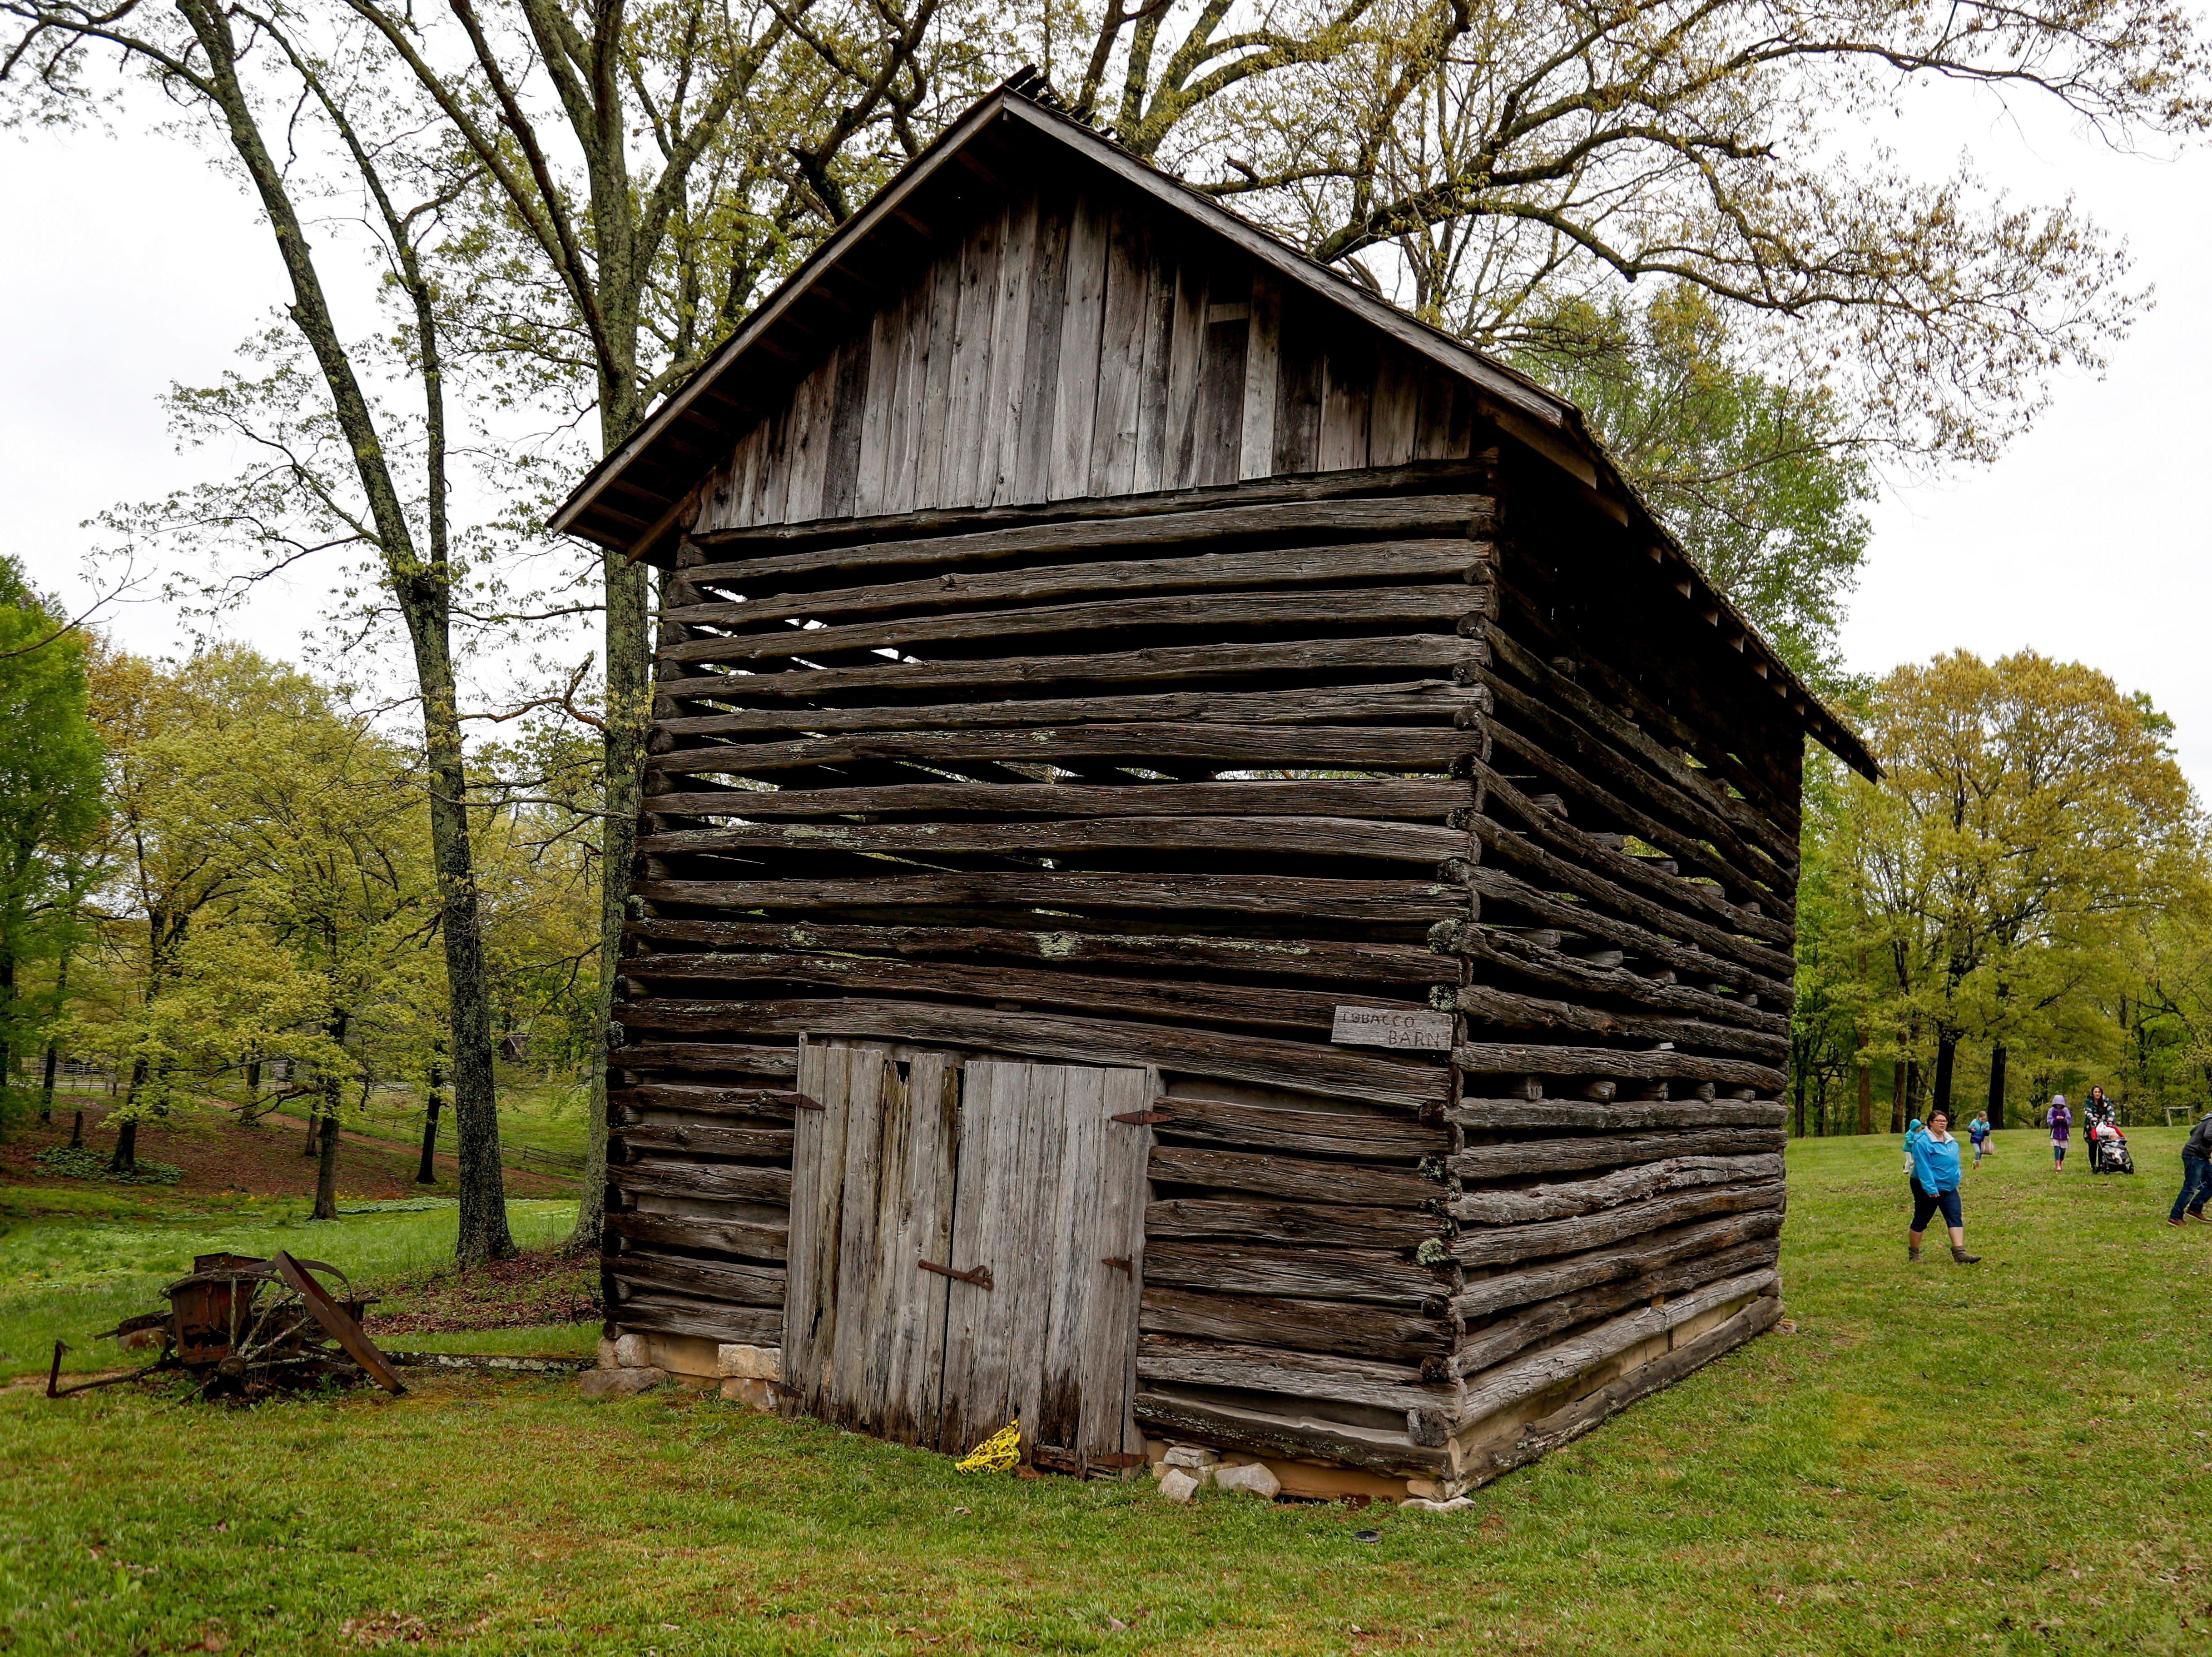 A tobacco storage barn sits tall after being searched during an egg hunt at the annual Easter egg hunts at Historic Collinsville in Clarksville, Tenn., on Saturday, April 20, 2019.